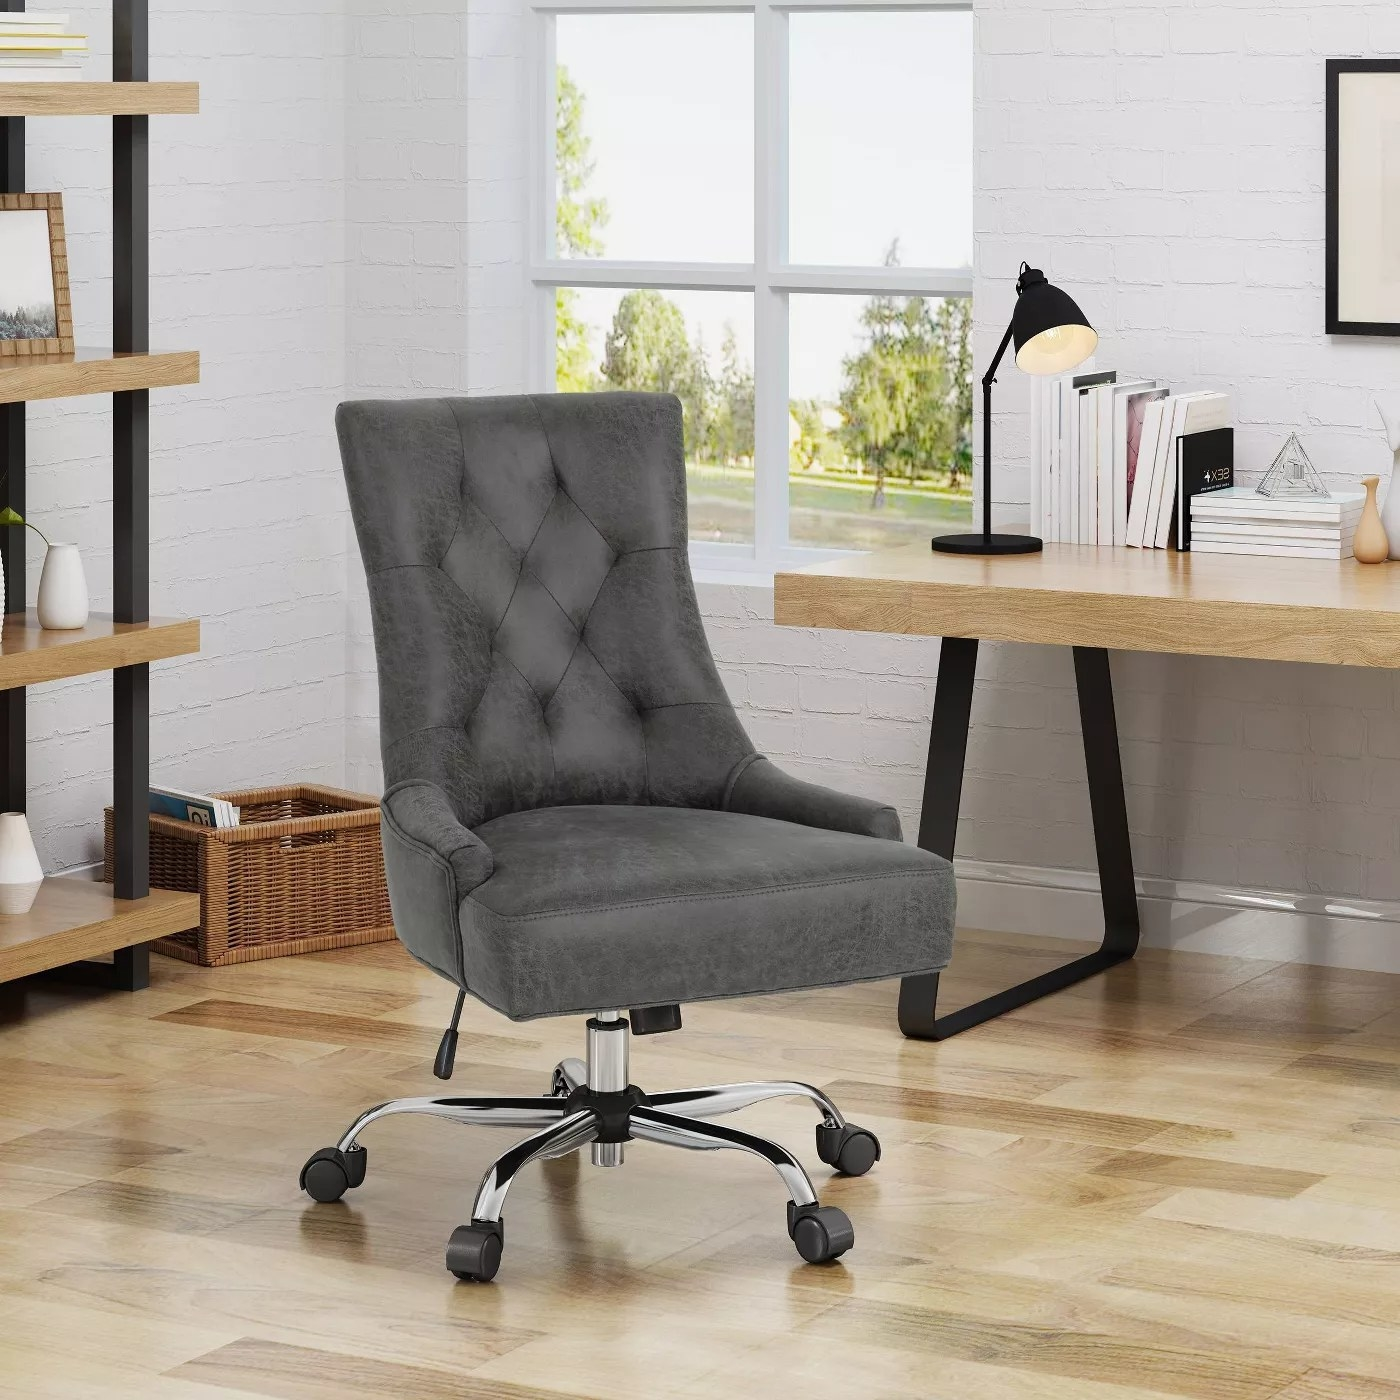 A gray, tufted, swivel chair